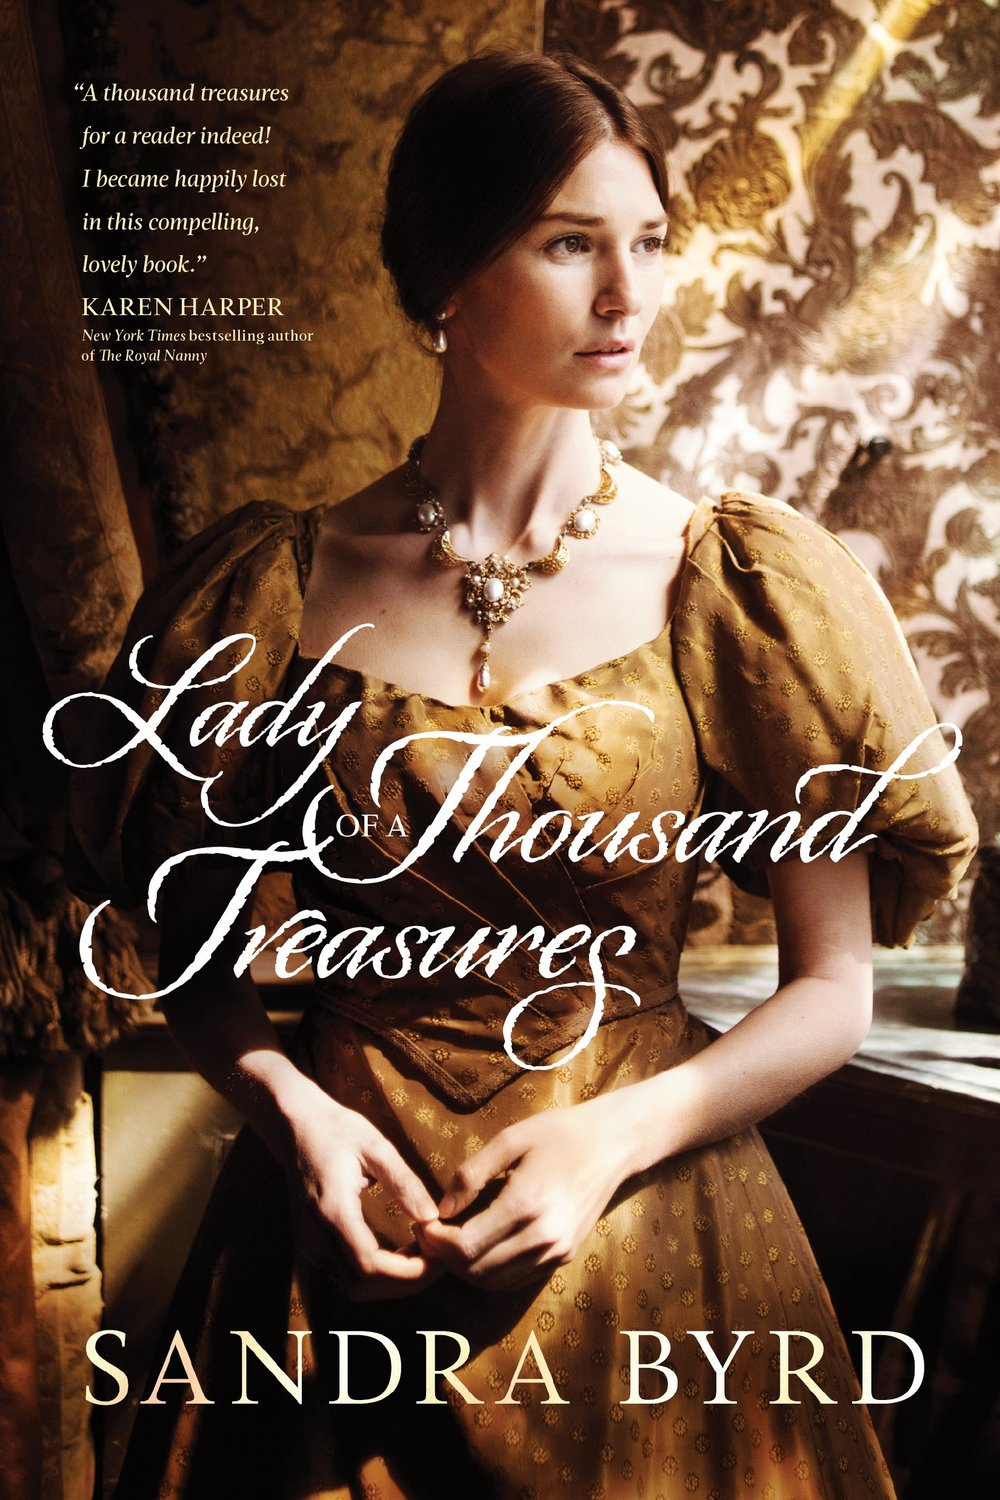 Lady of a thousand treasures by sandra byrd.jpg